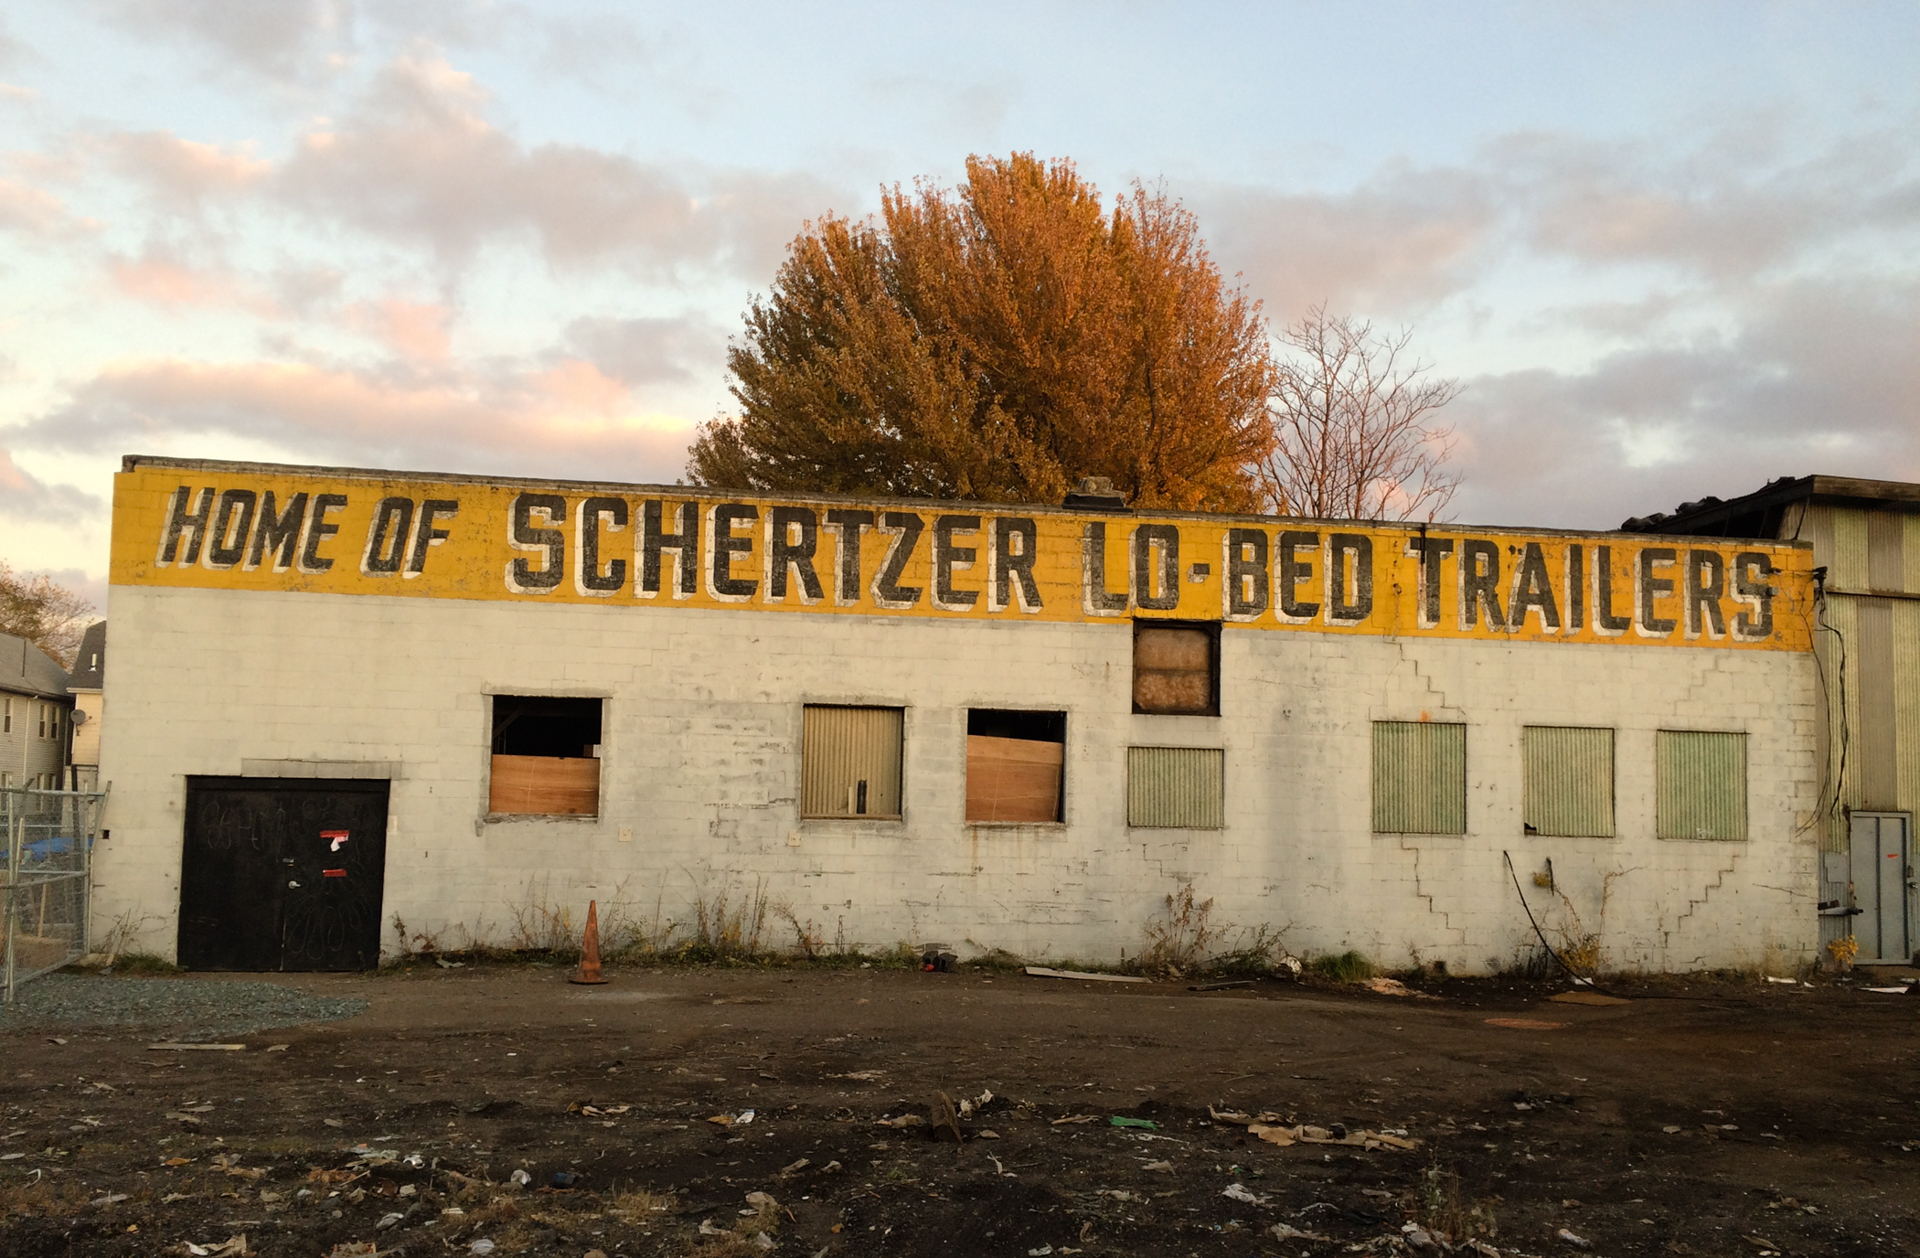 Schertzer Lo-Bed Trailers, Somerville, Massachusetts